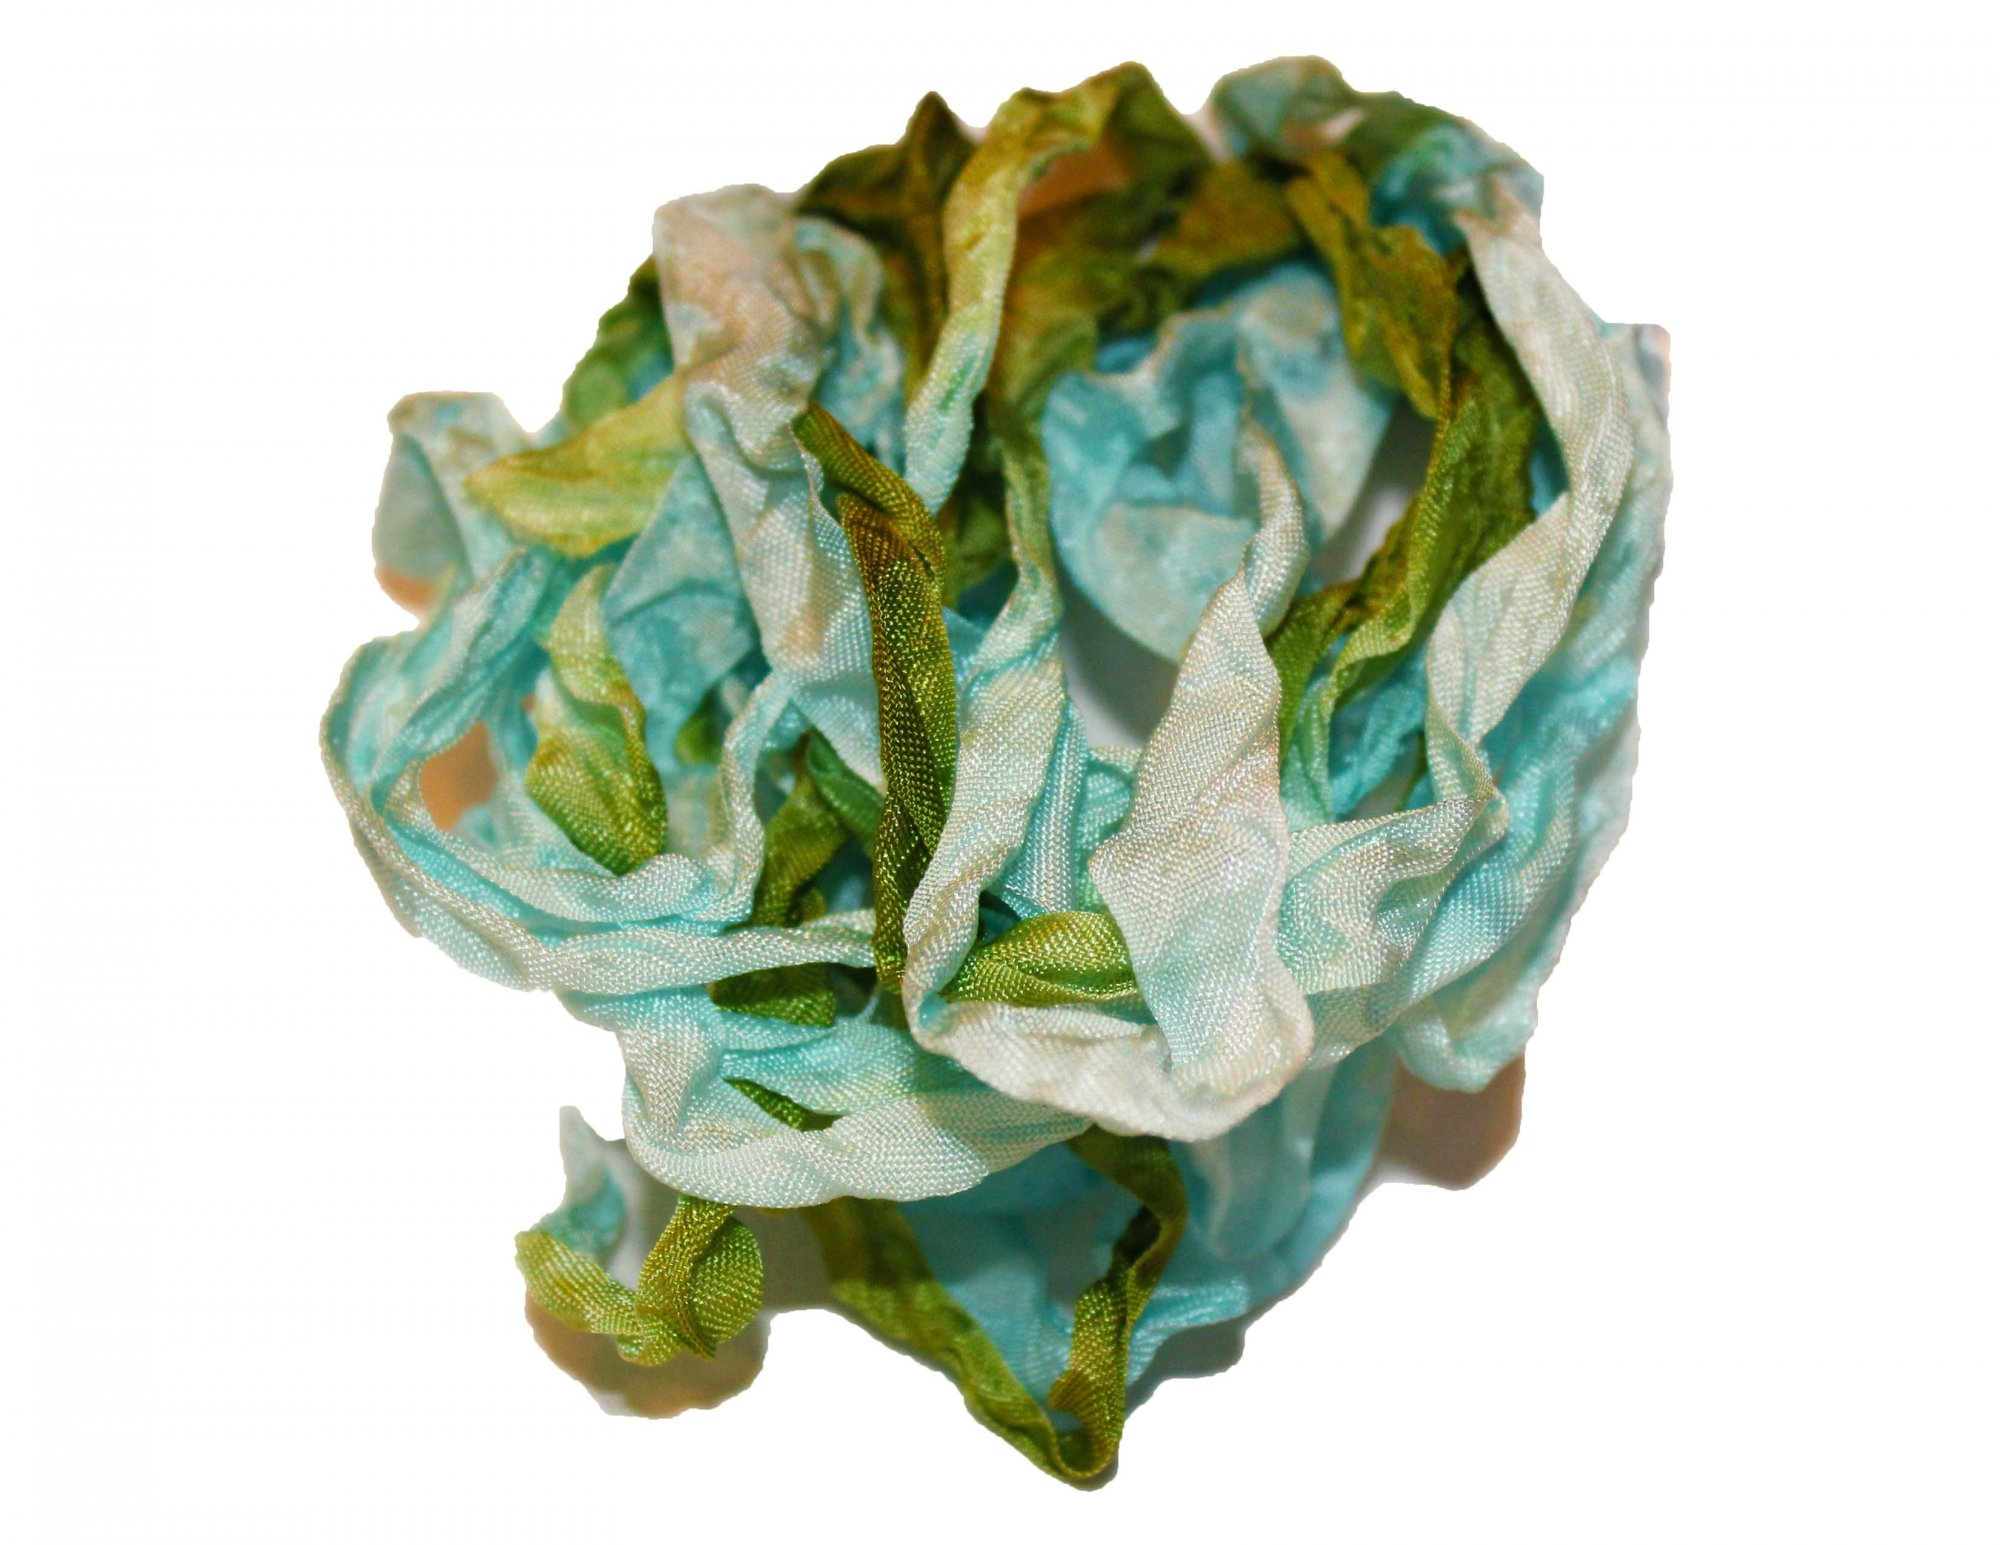 Forget Me Not Hand-Dyed Rayon Seam Binding 5yds